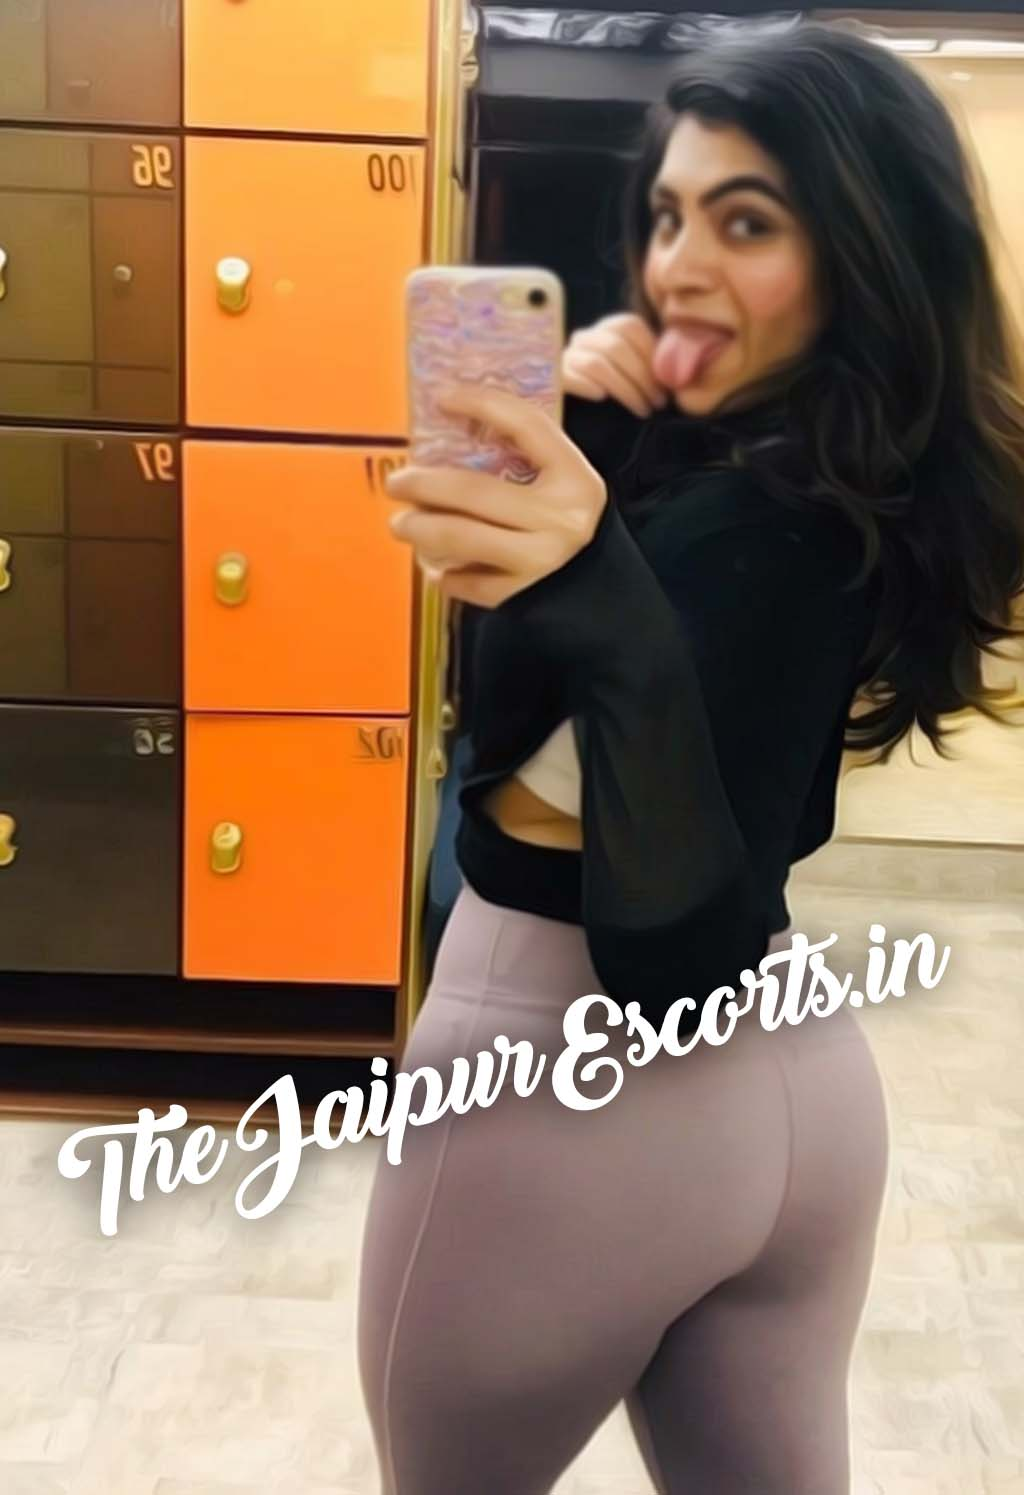 The Jaipur Escorts